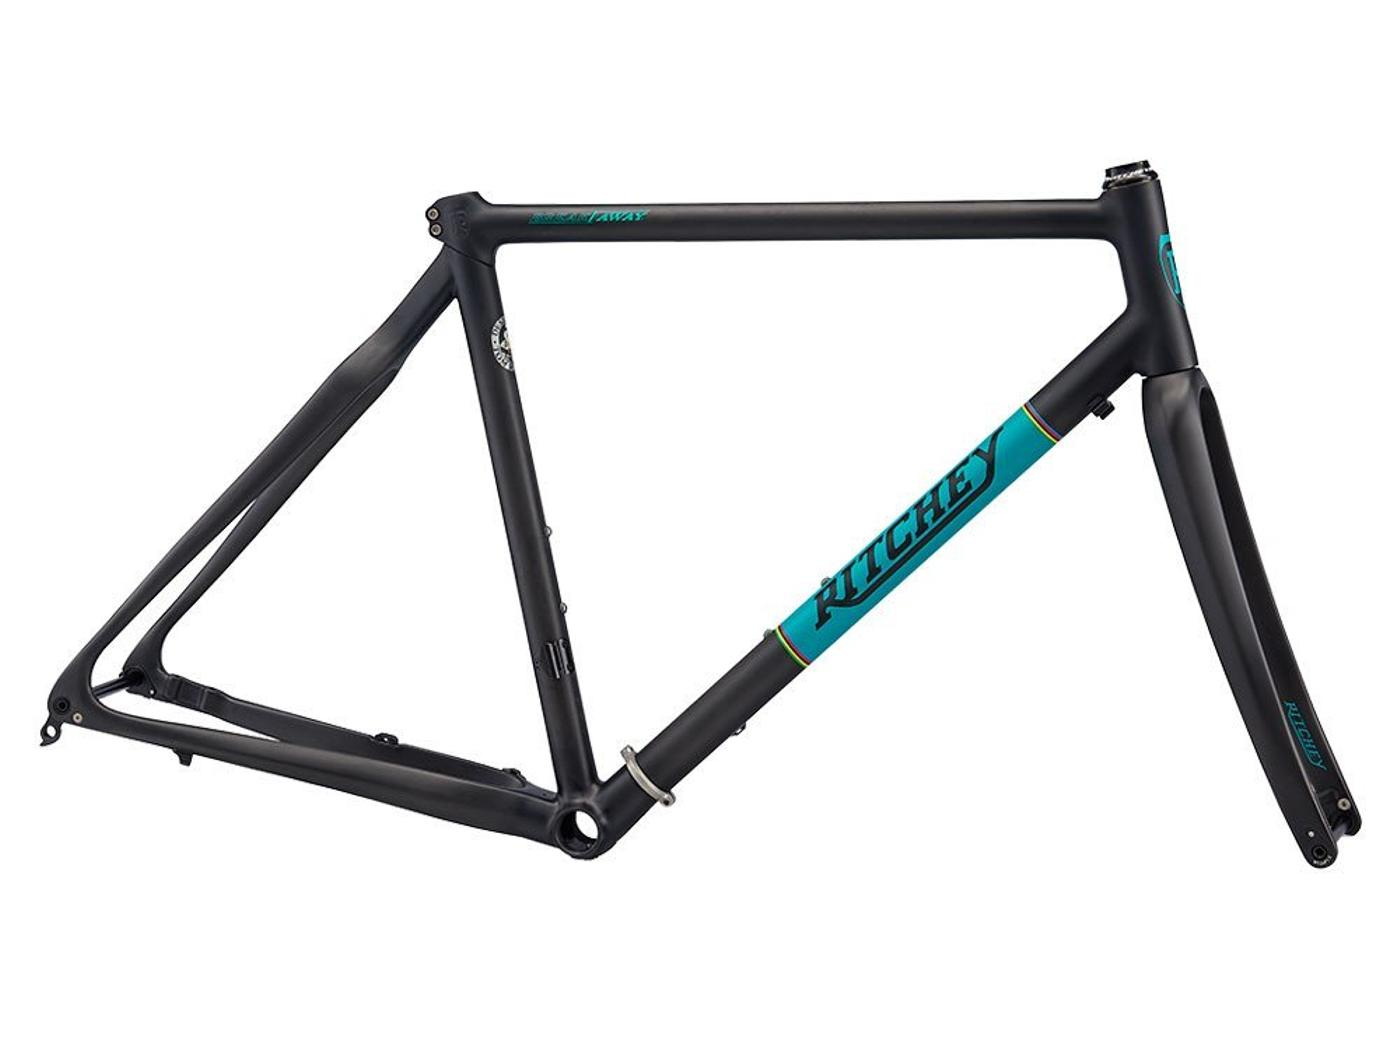 Ritchey Unveils their New Outback Break-Away Carbon All-Road Frameset